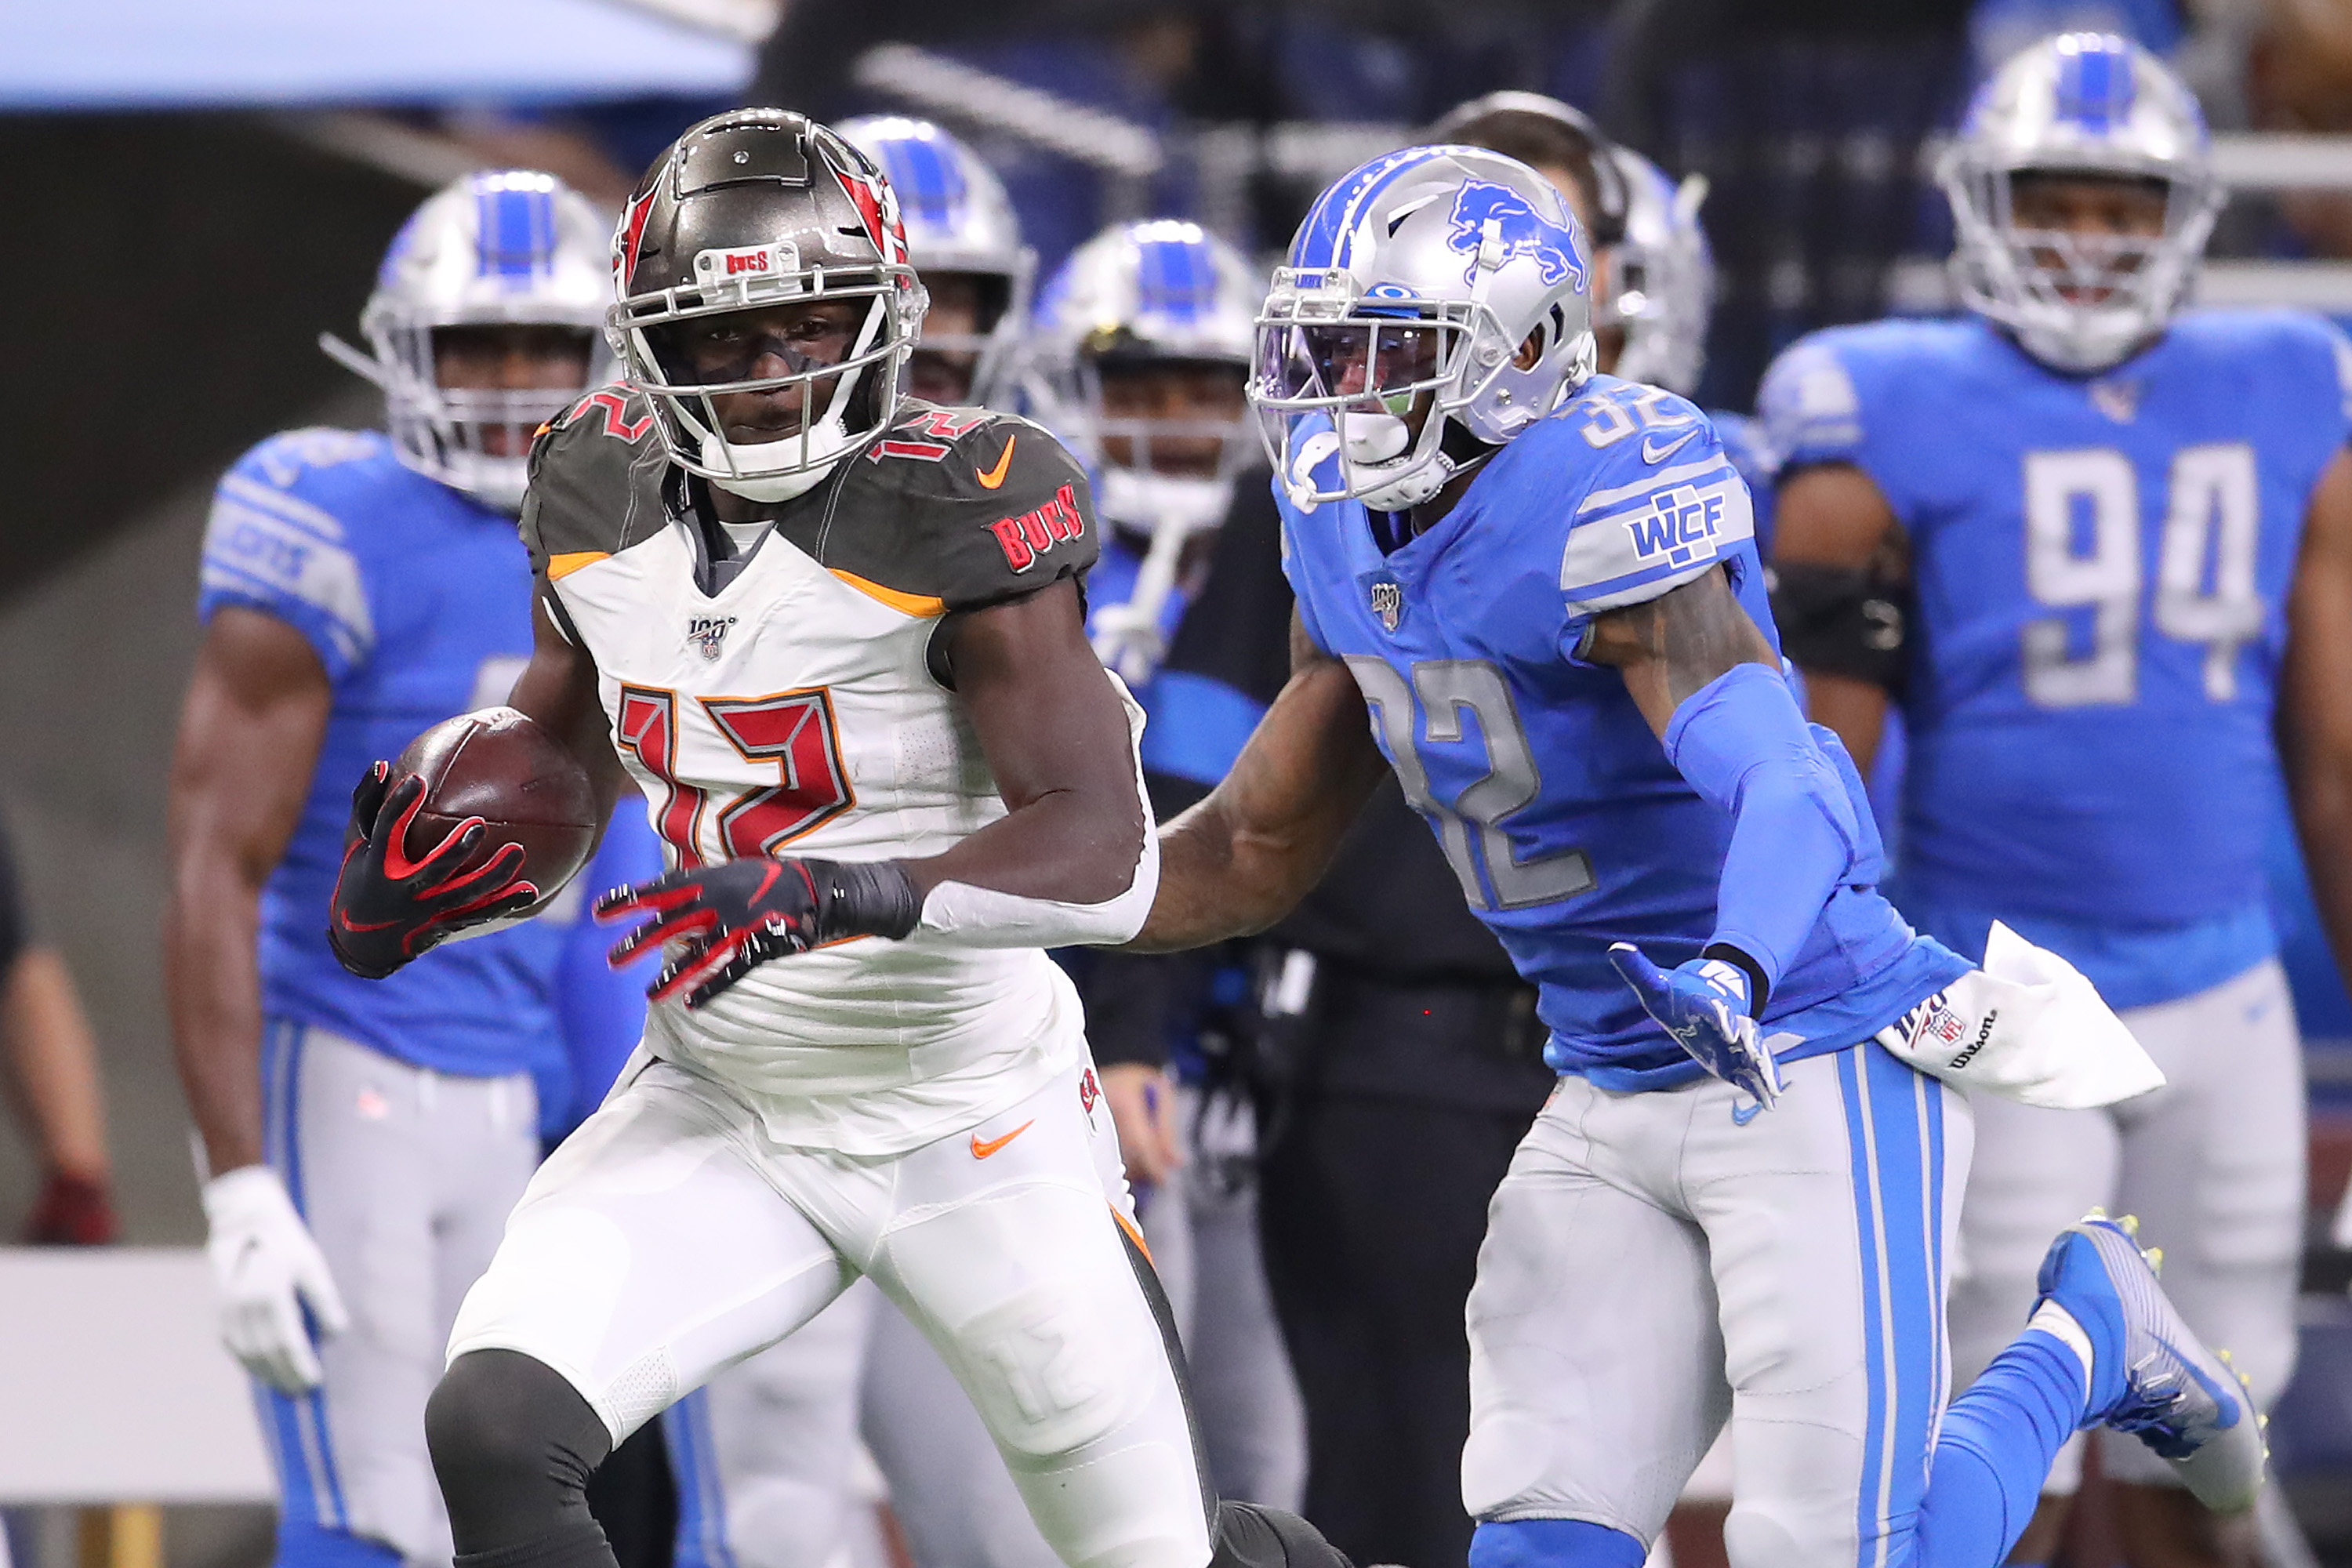 Chris Godwin of the Tampa Bay Buccaneers looks for yards after a first half catch next to Tavon Wilson of the Detroit Lions at Ford Field on December 15, 2019 in Detroit, Michigan.